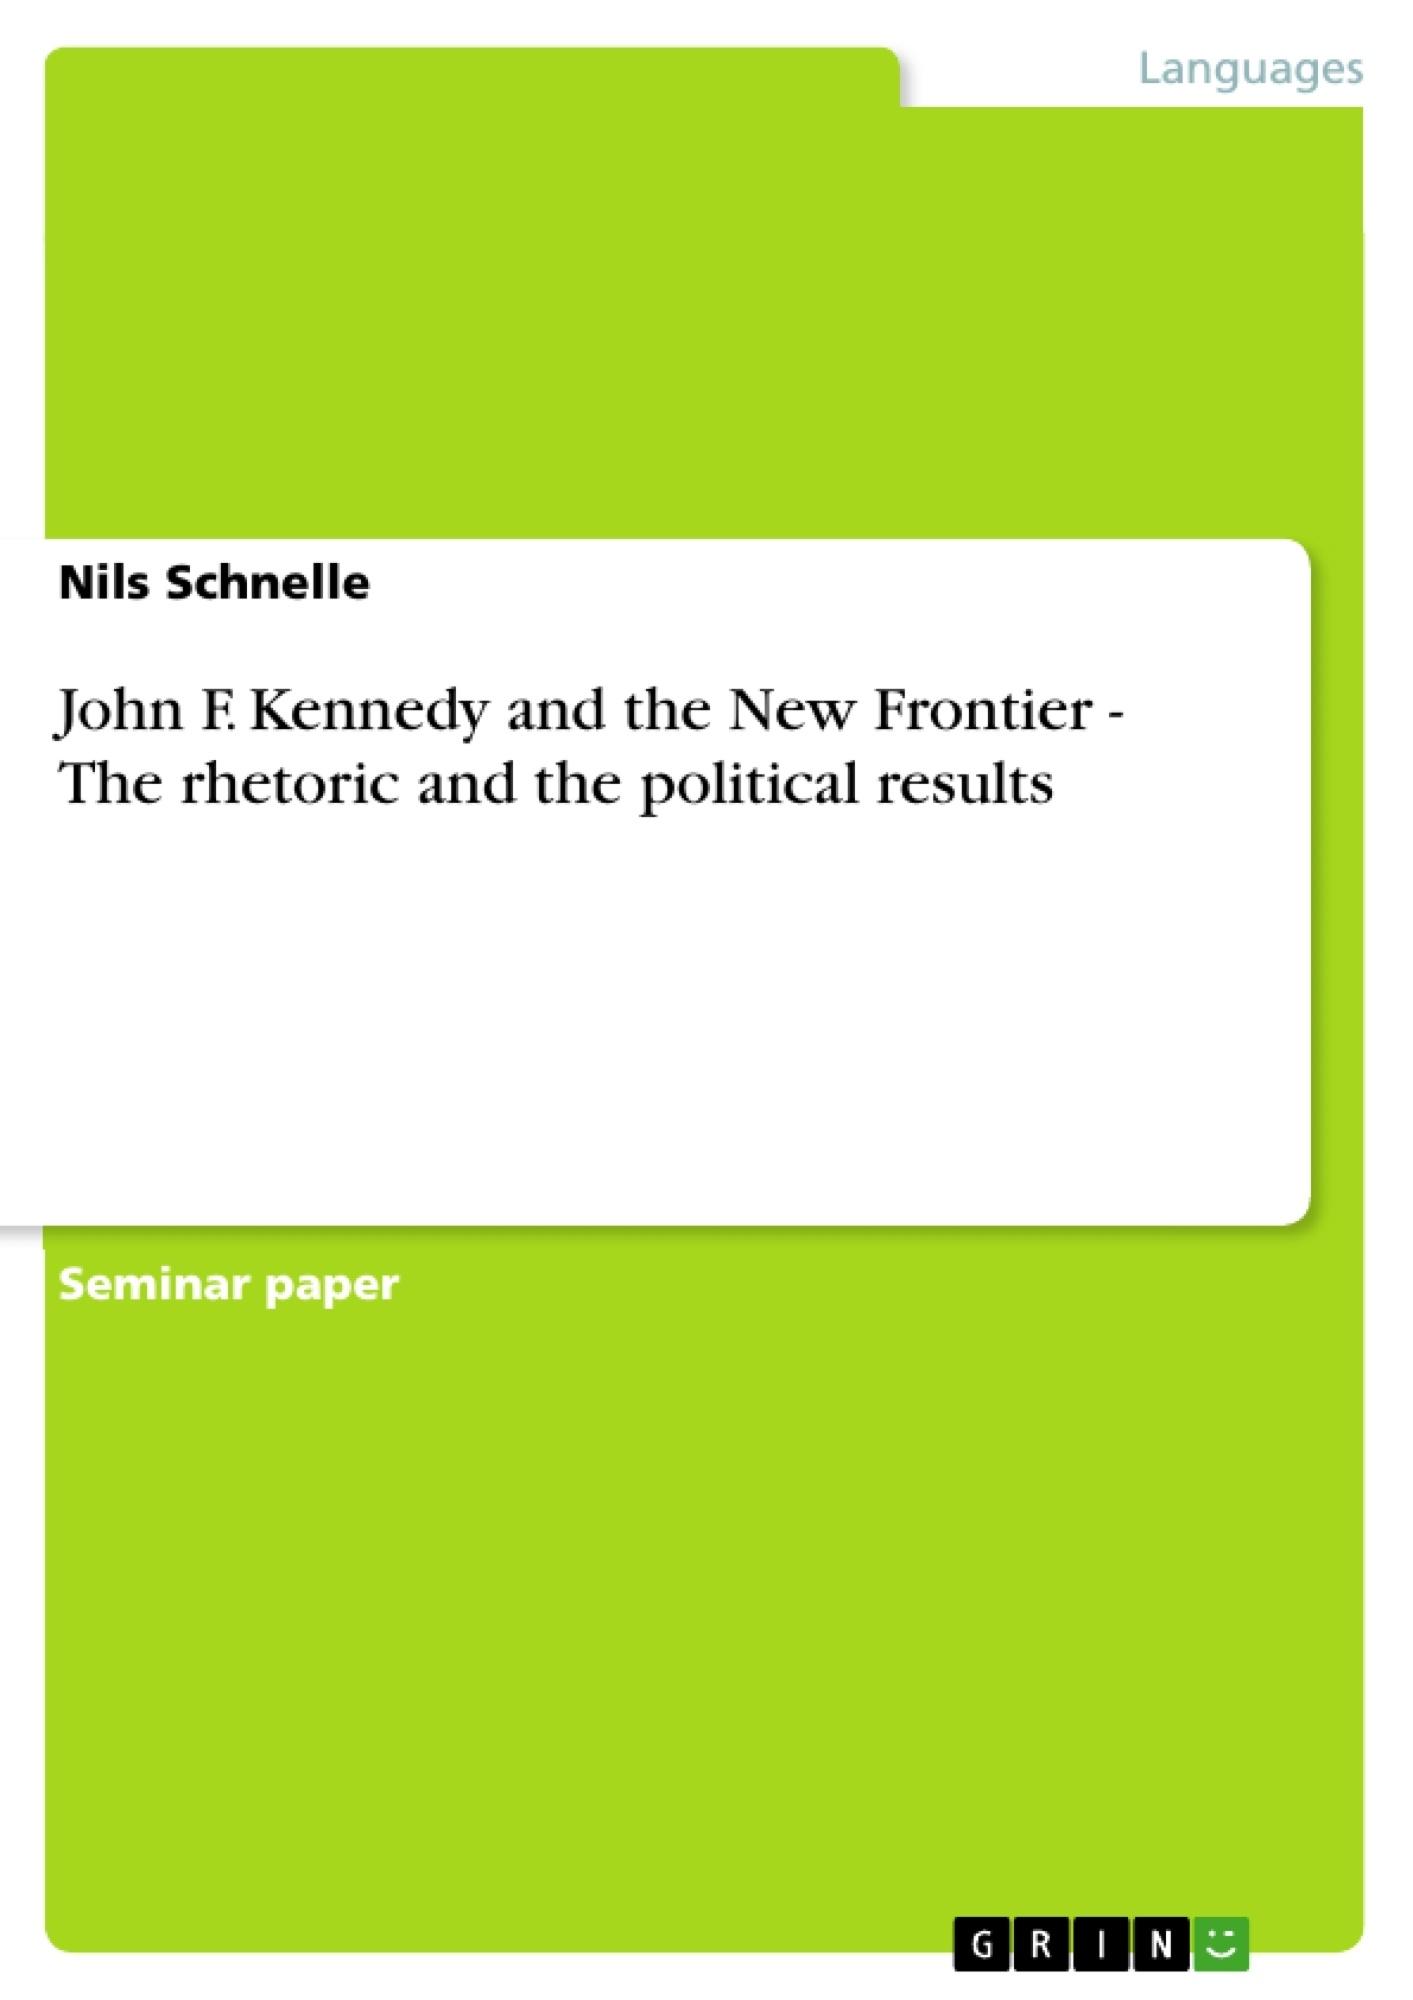 Title: John F. Kennedy and the New Frontier - The rhetoric and the political results